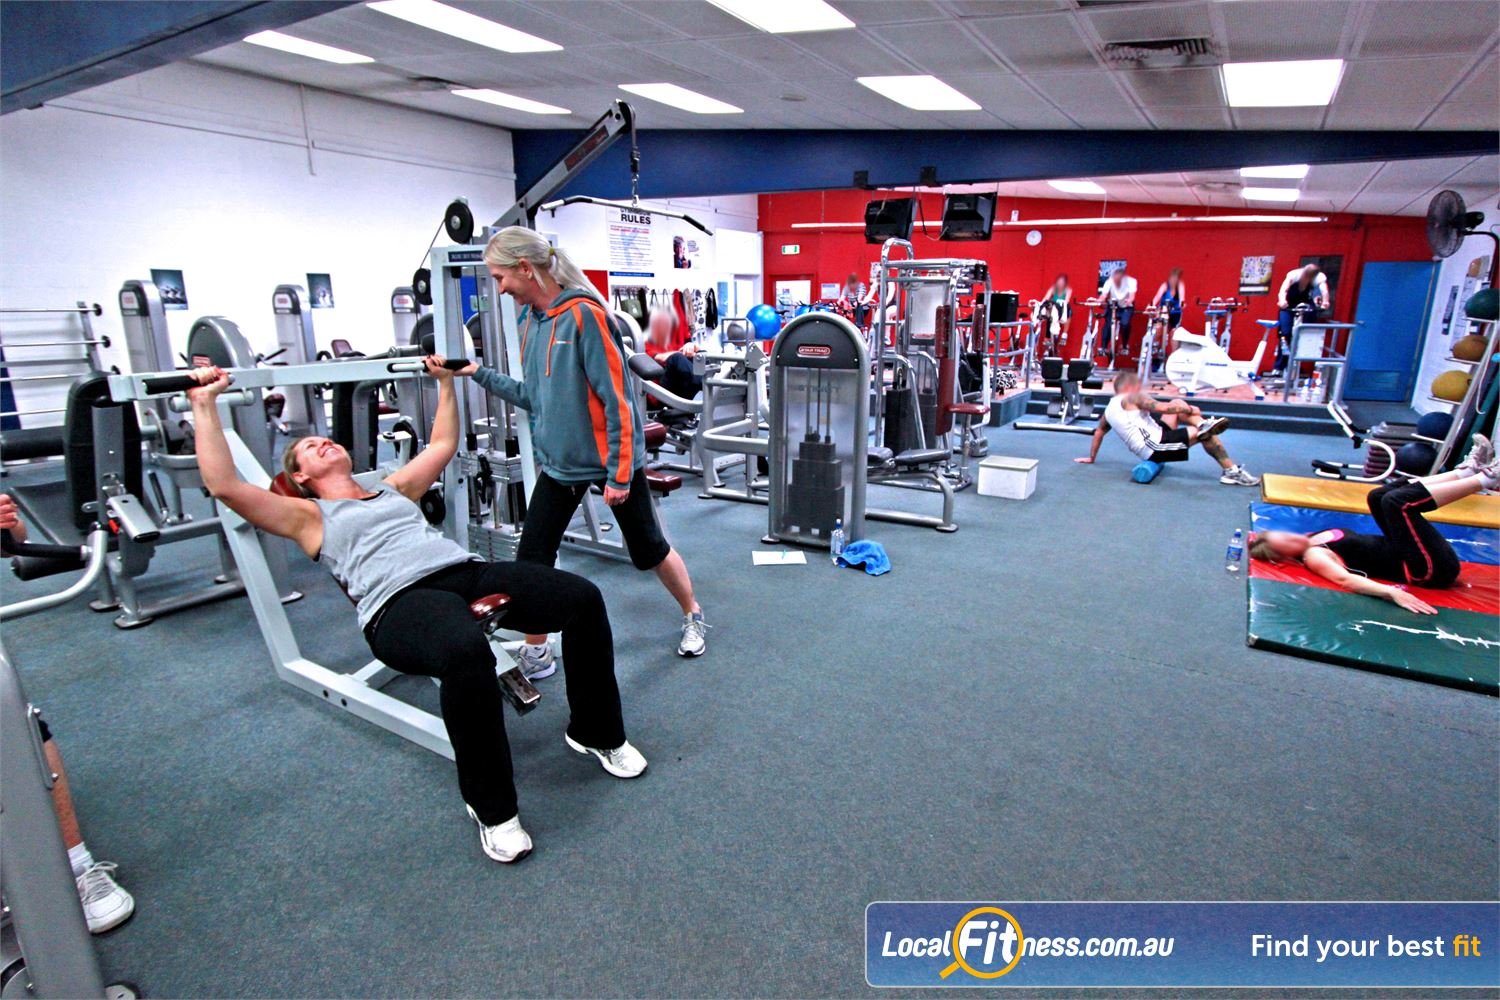 East Keilor Leisure Centre Keilor East Experienced and committed East Keilor gym staff provide a helpful experience.